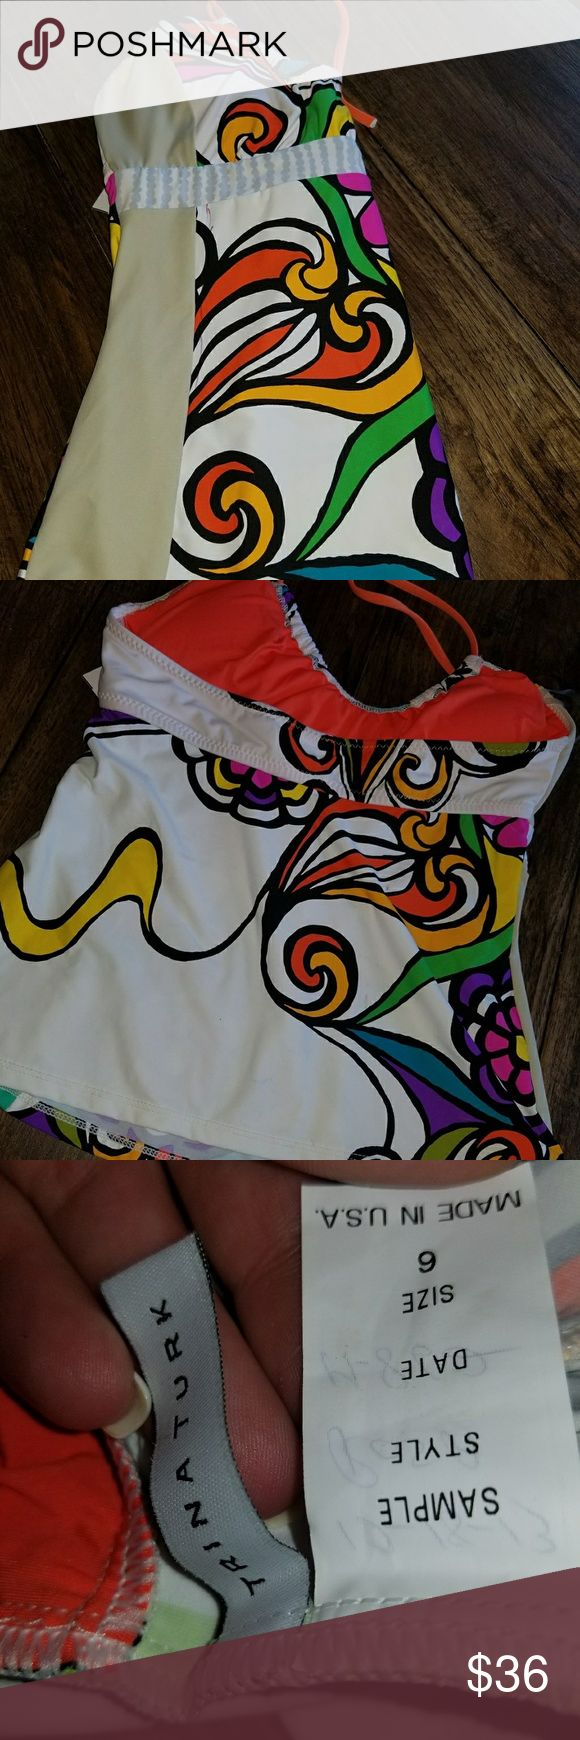 Trina Turk Aquarius tankini top. New With Tags.  Age of Aquarius swim tankini.  Matching bottoms available in size 4 but sold separately   Retail $88   Trina Turk  Aquarius tankini top    Trina Turk Swim Size Chart w/ pics  The Age of Aquarius is here-stay in tune with the times in this swimmingly psychedelic bikini?   Tankini top. Features a contrast printed trim . Ties at behind the neck. Trina Turk Swim Bikinis